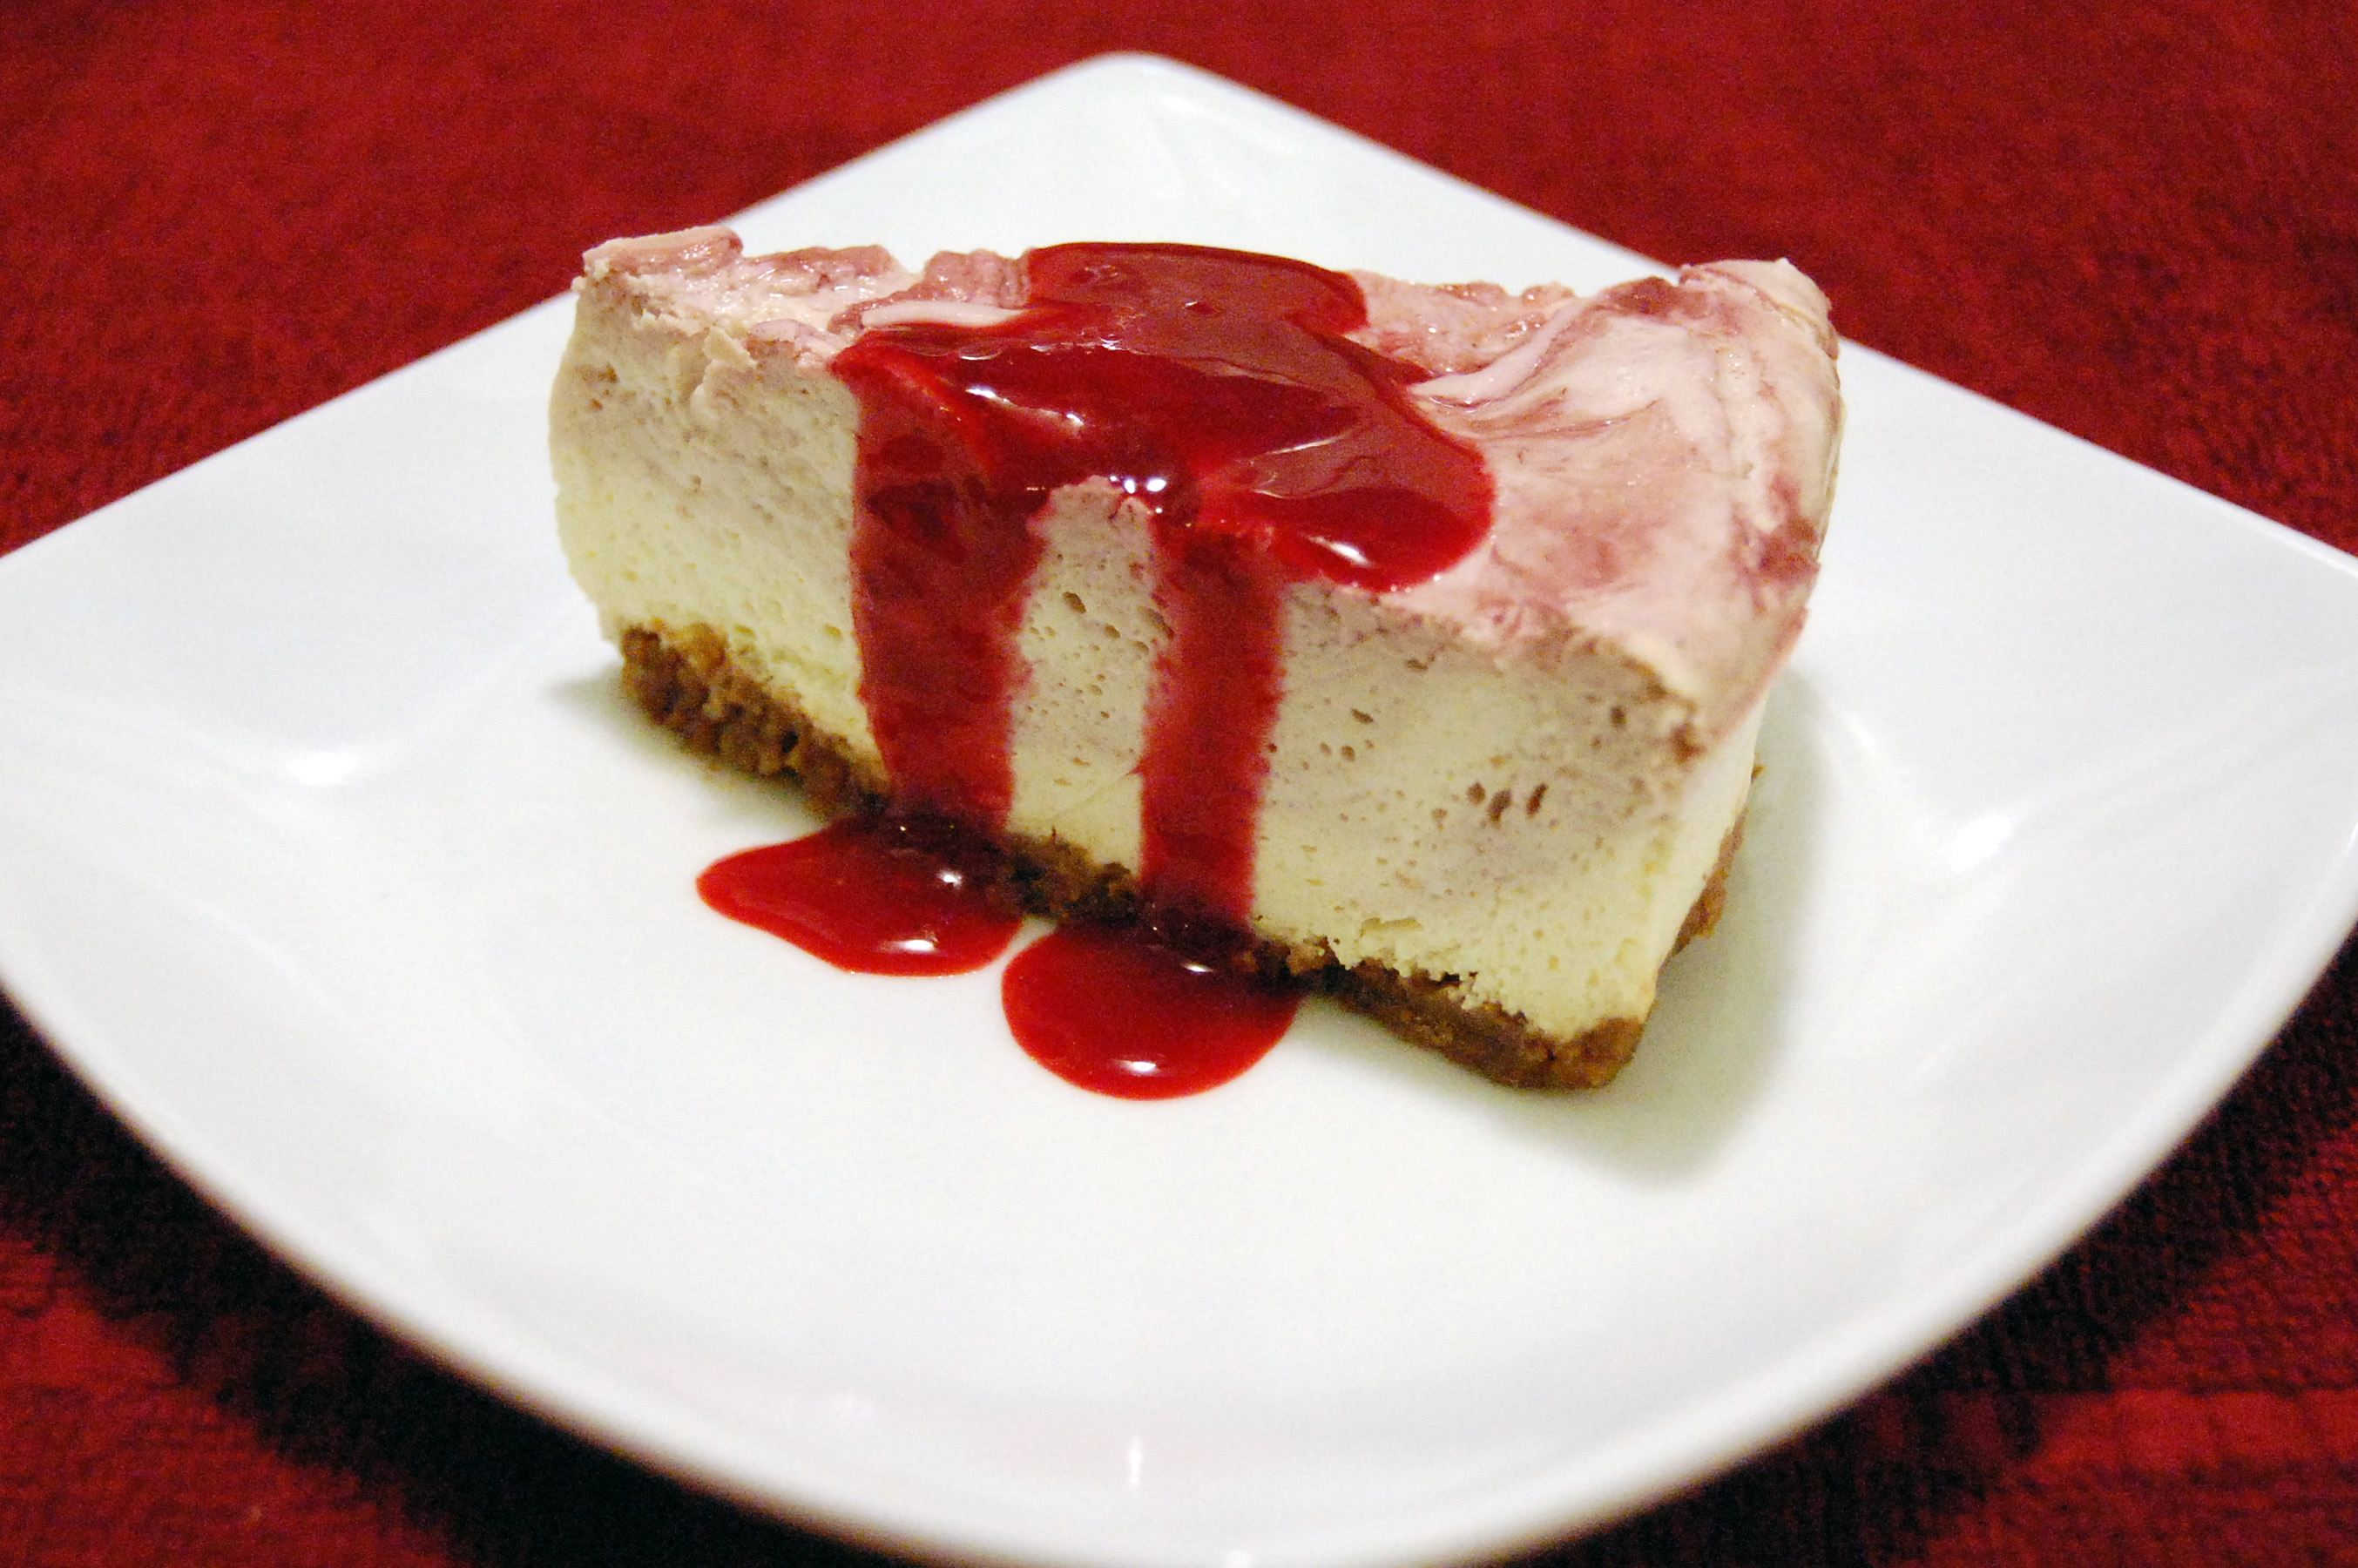 Raspberry Swirl Cheesecake w/ Gingerbread Crust